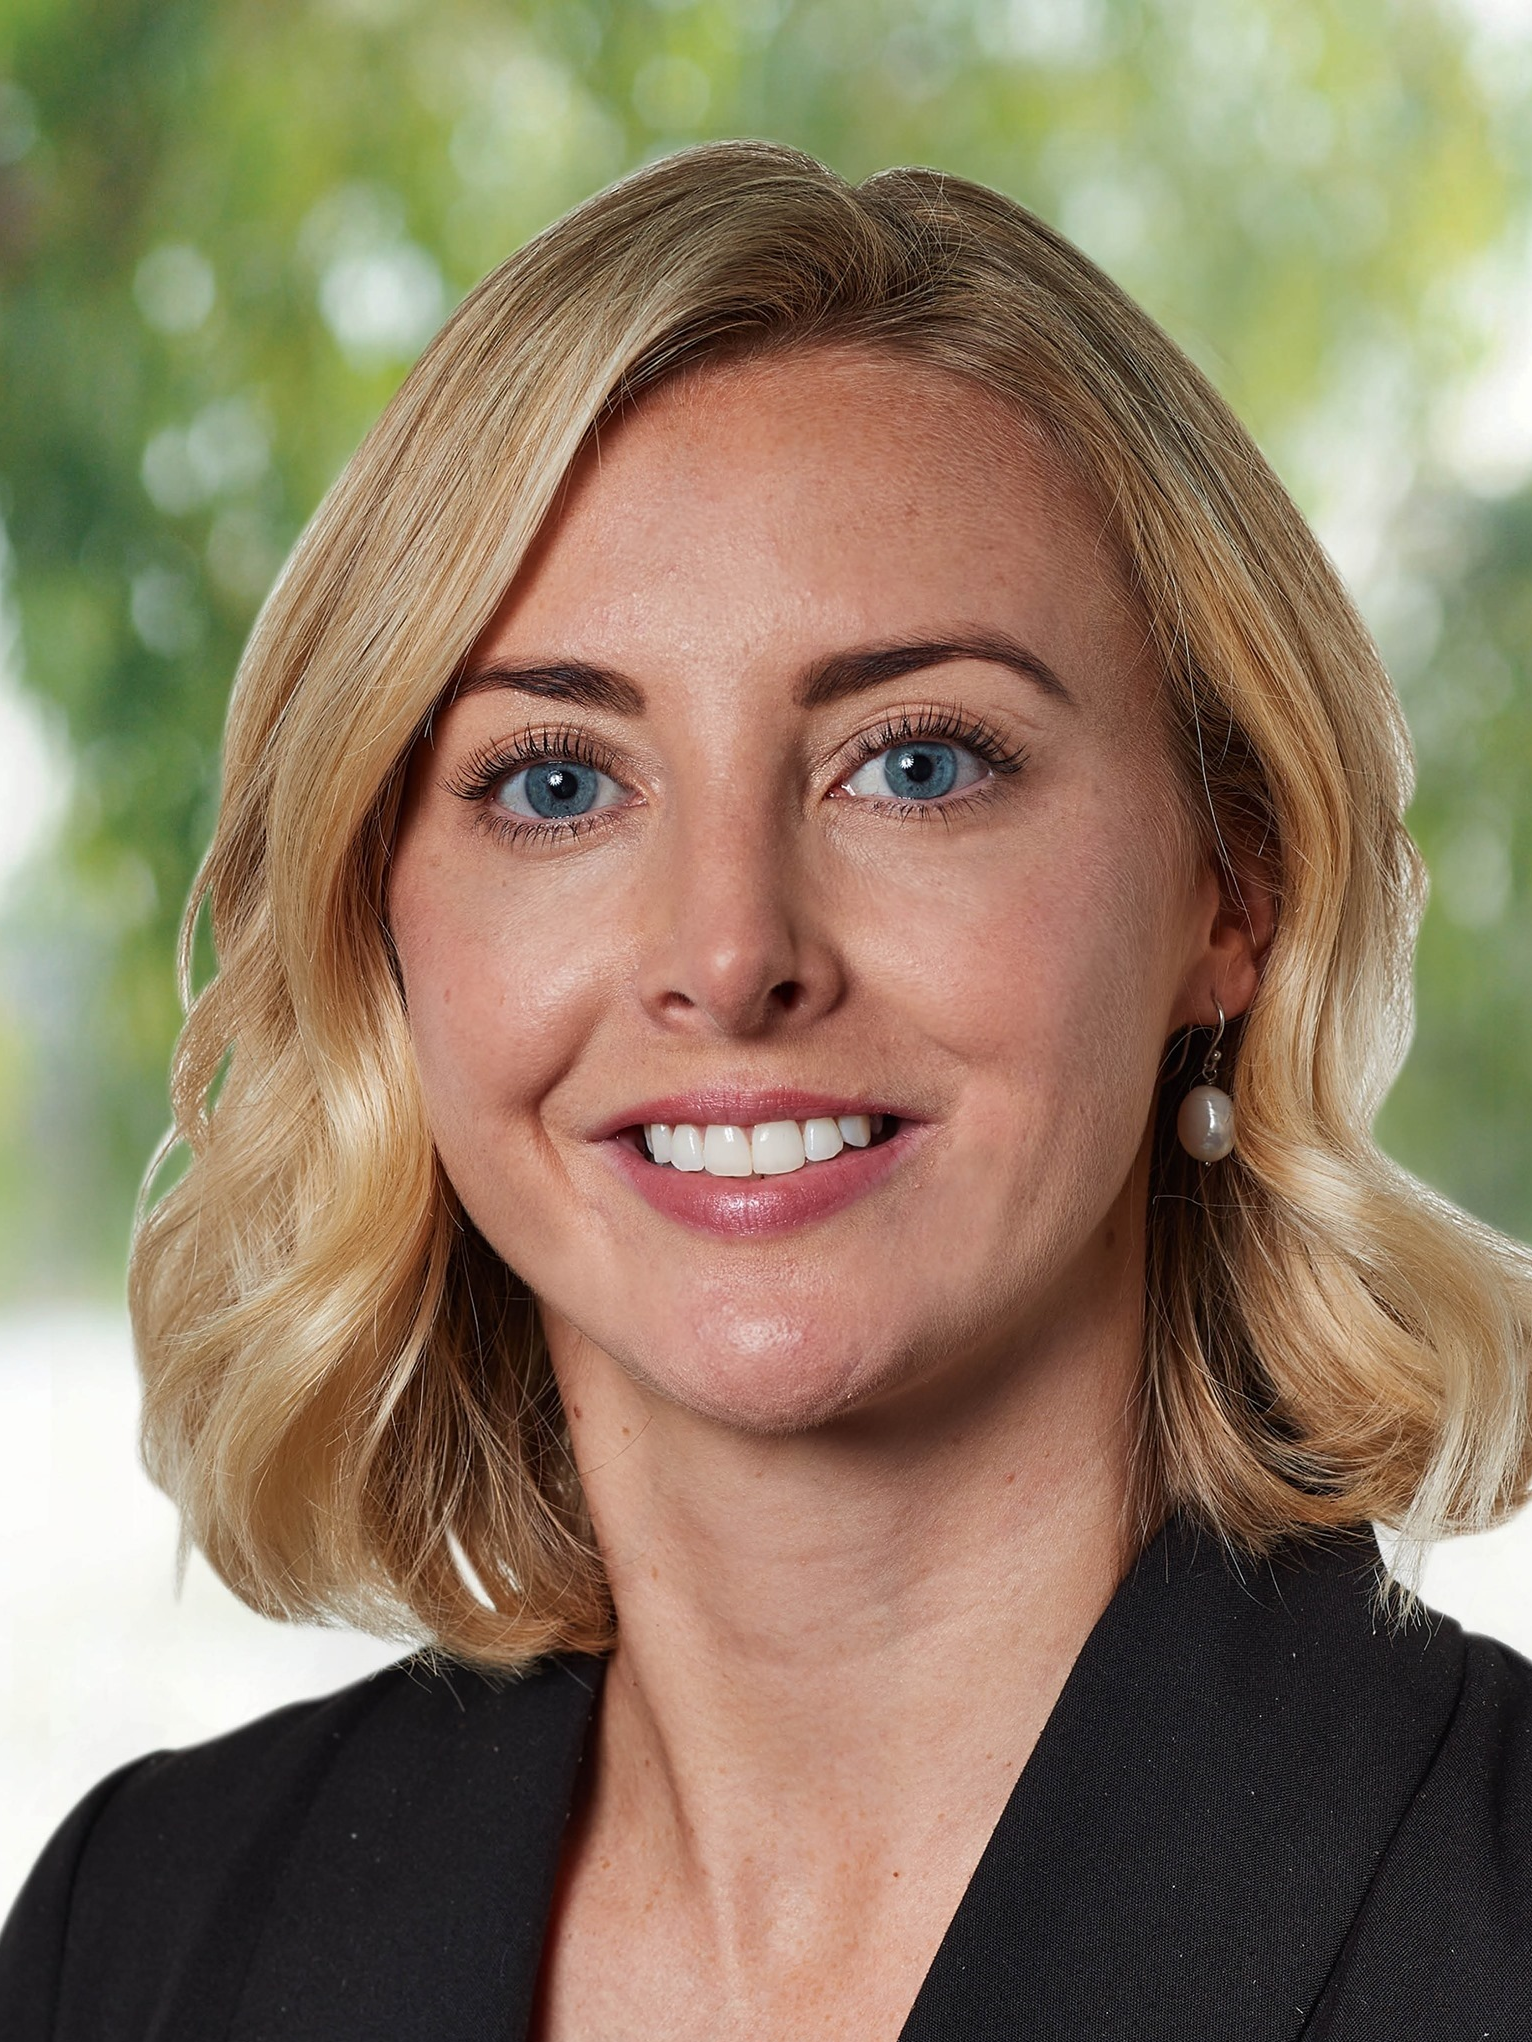 Caitlin Collins Member for Hillarys